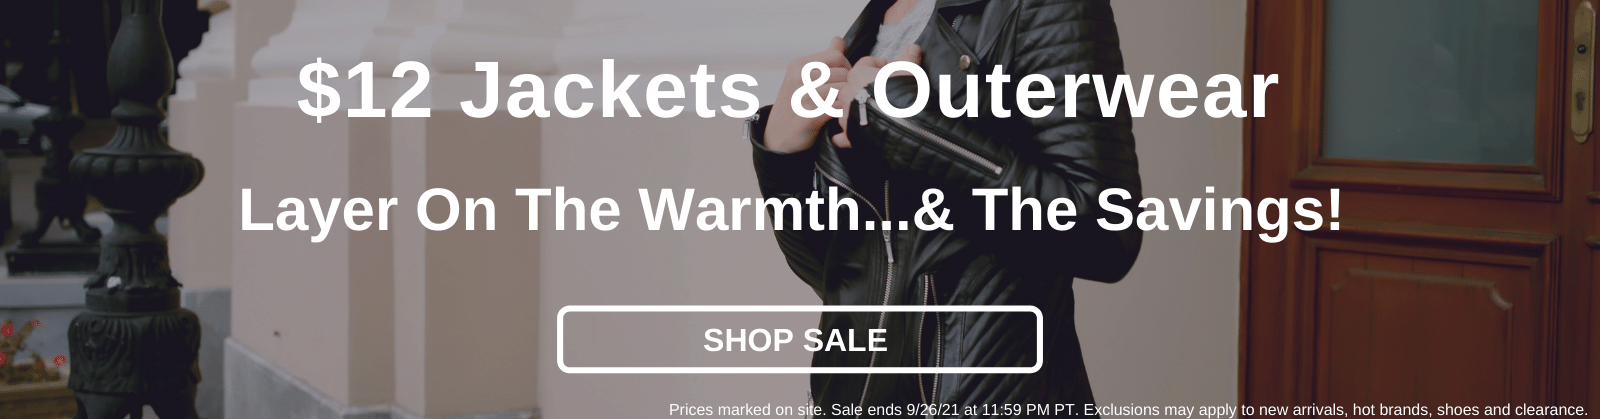 $12 Jackets & Outerwear Layer On The Warmth...& The Savings! [Shop Sale]